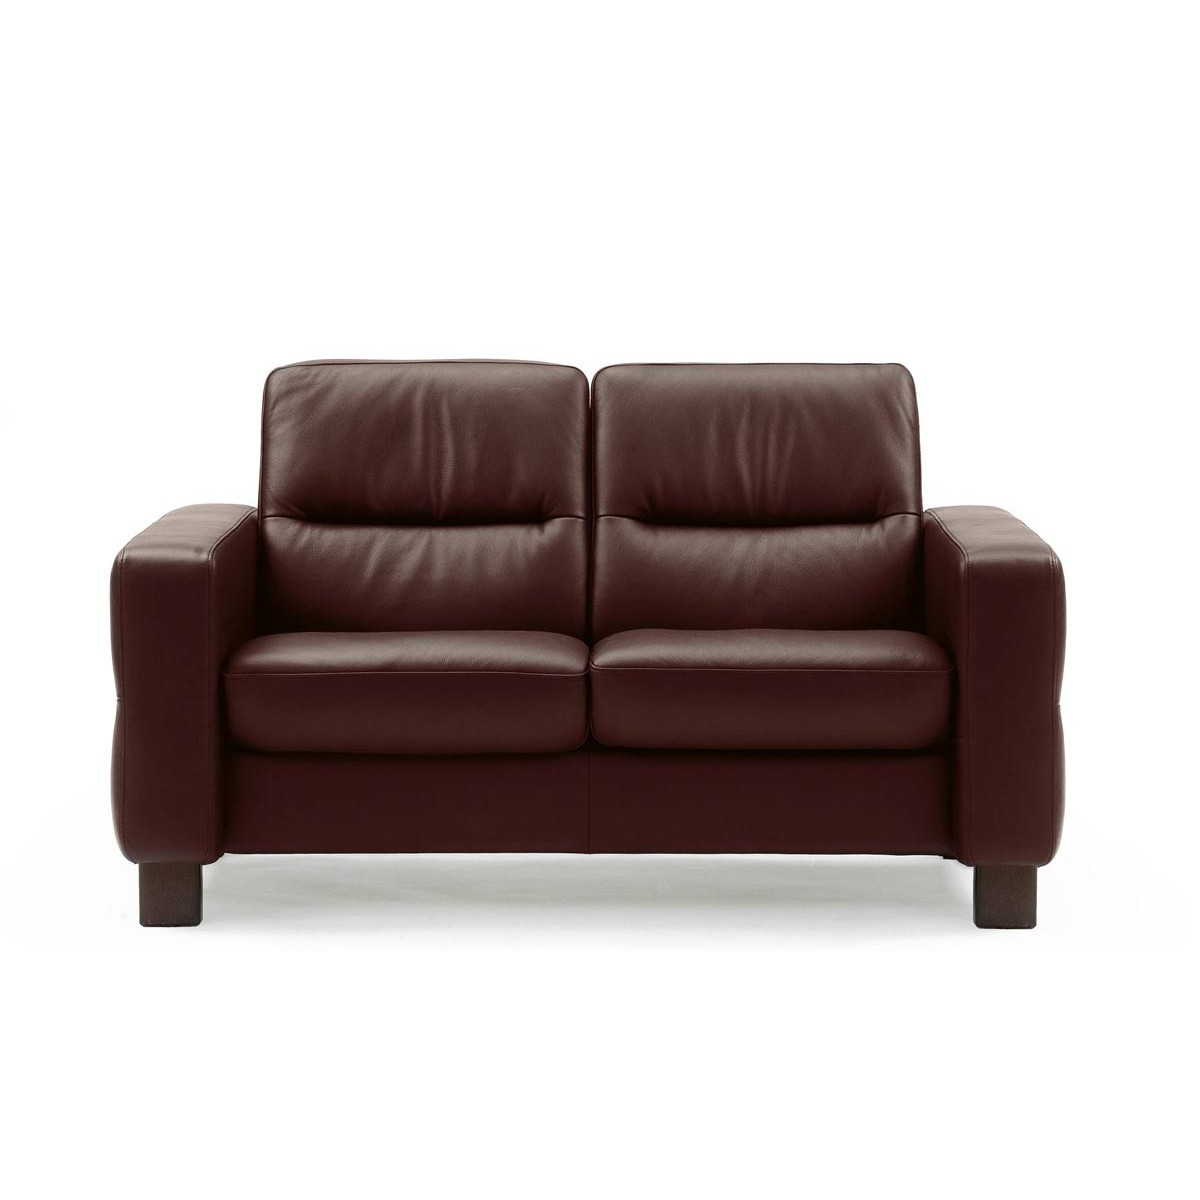 Stressless Wave Low Back Loveseat From 2 495 00 By